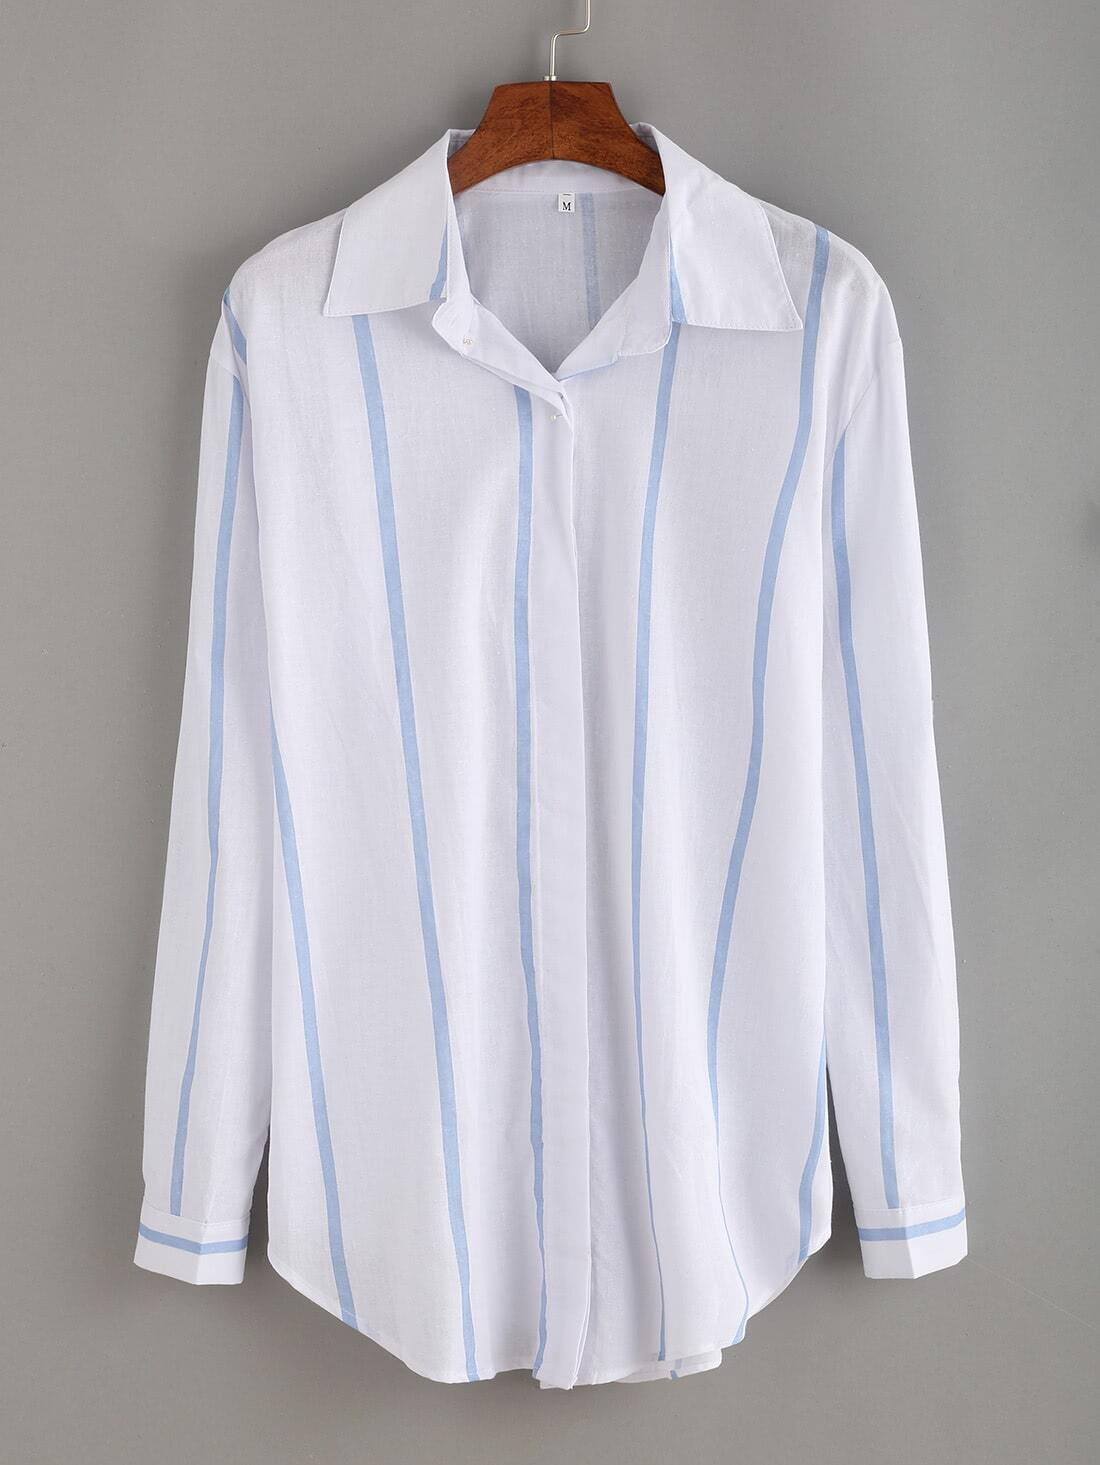 Vertical Striped Pointed Collar Curved Hem Shirt striped curved hem shirt dress